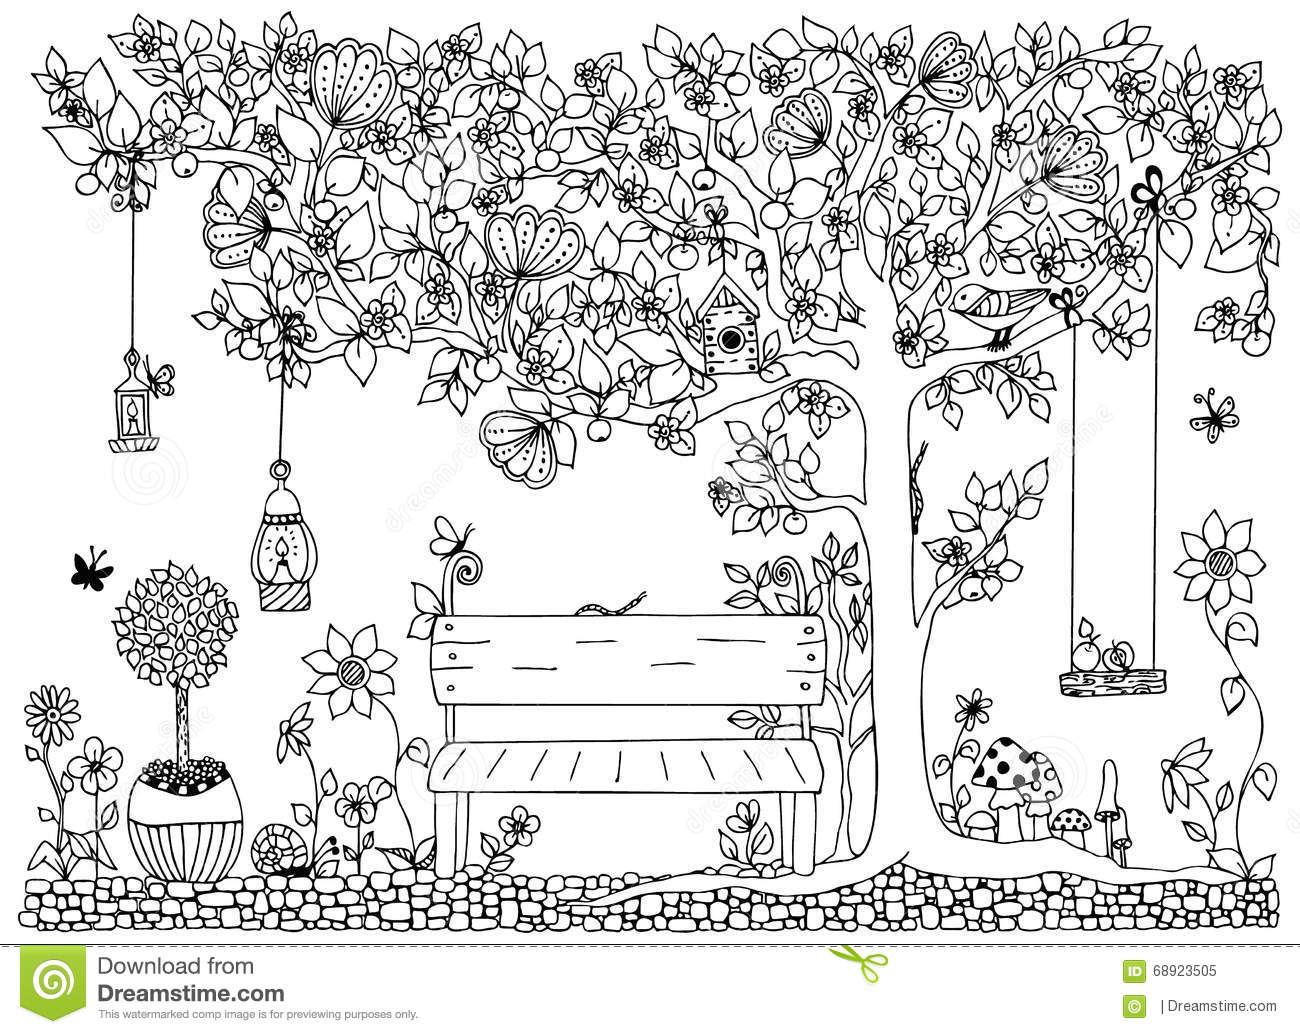 Tree coloring pages only coloring pages - Vector Illustration Zentangle Park Garden Spring Bench A Tree With